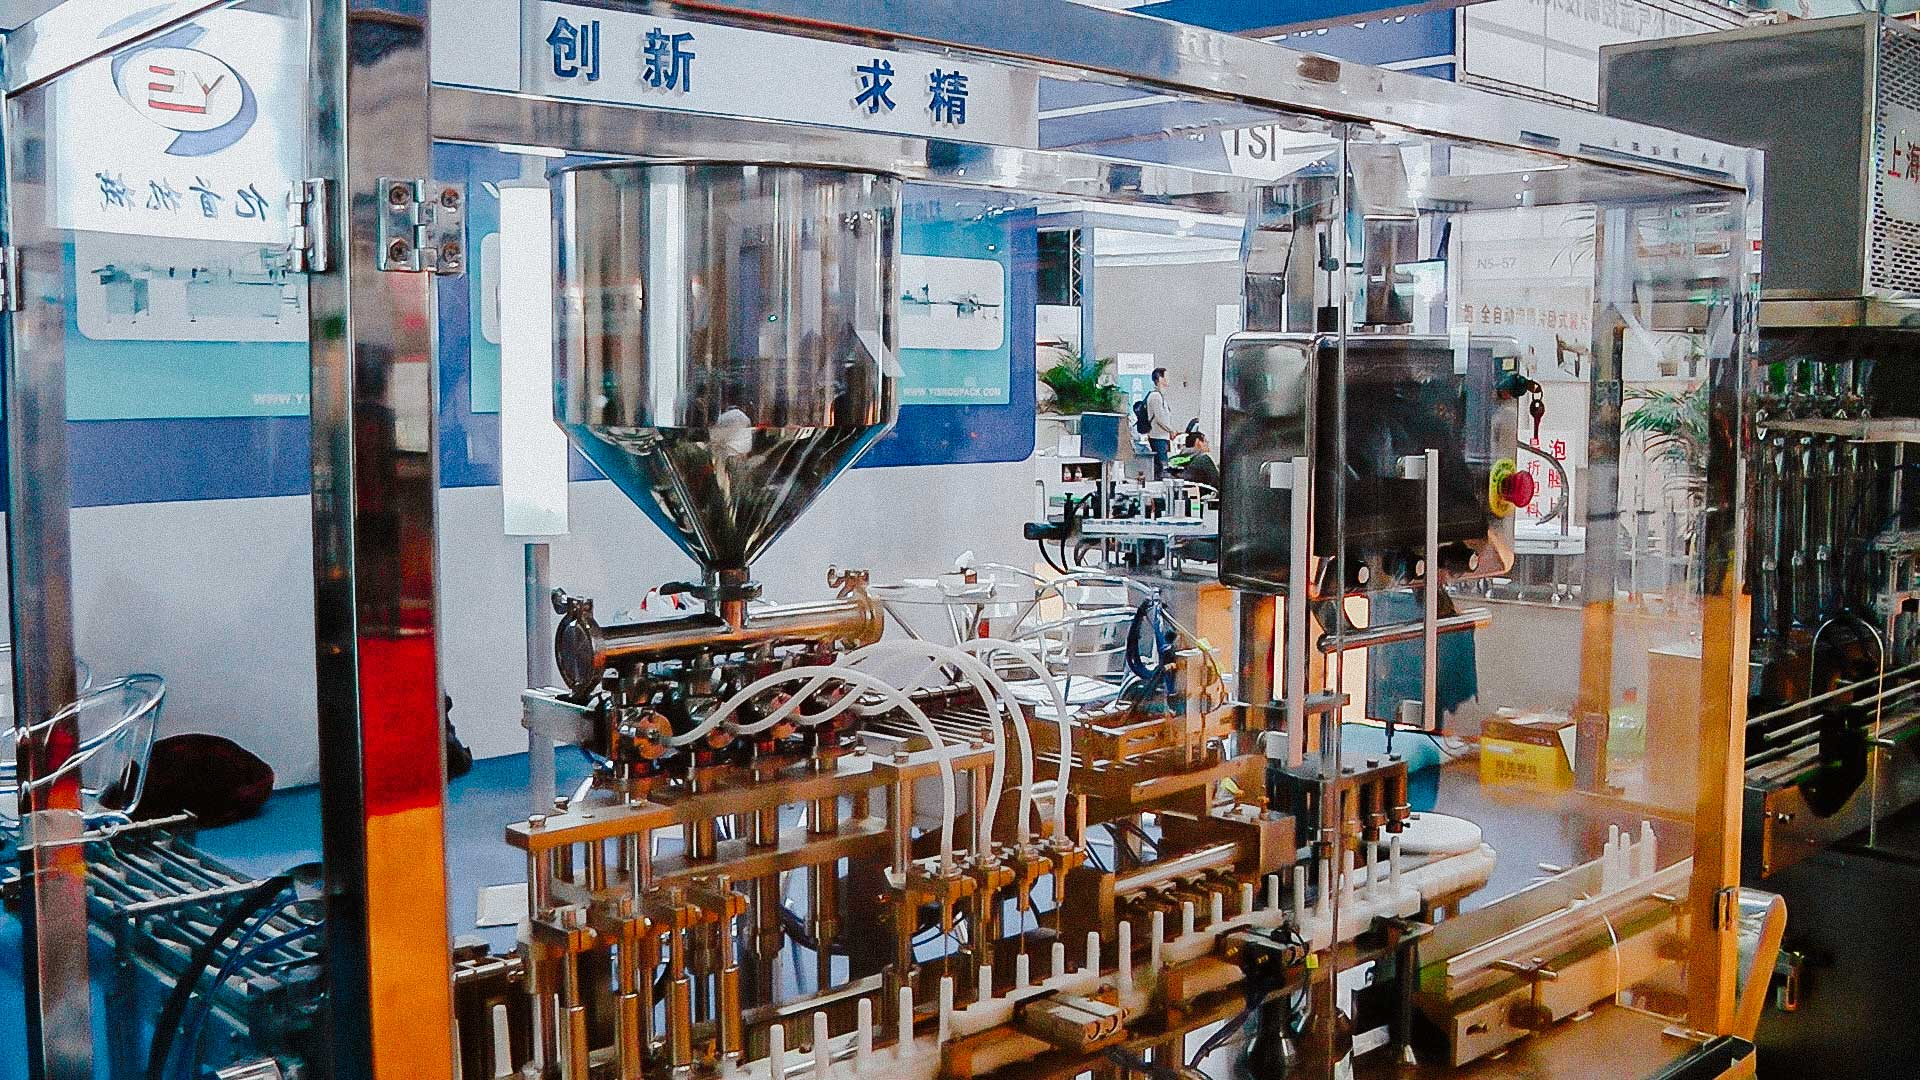 Automatic glass bottle filling and capping line machine for pharmaceutical production